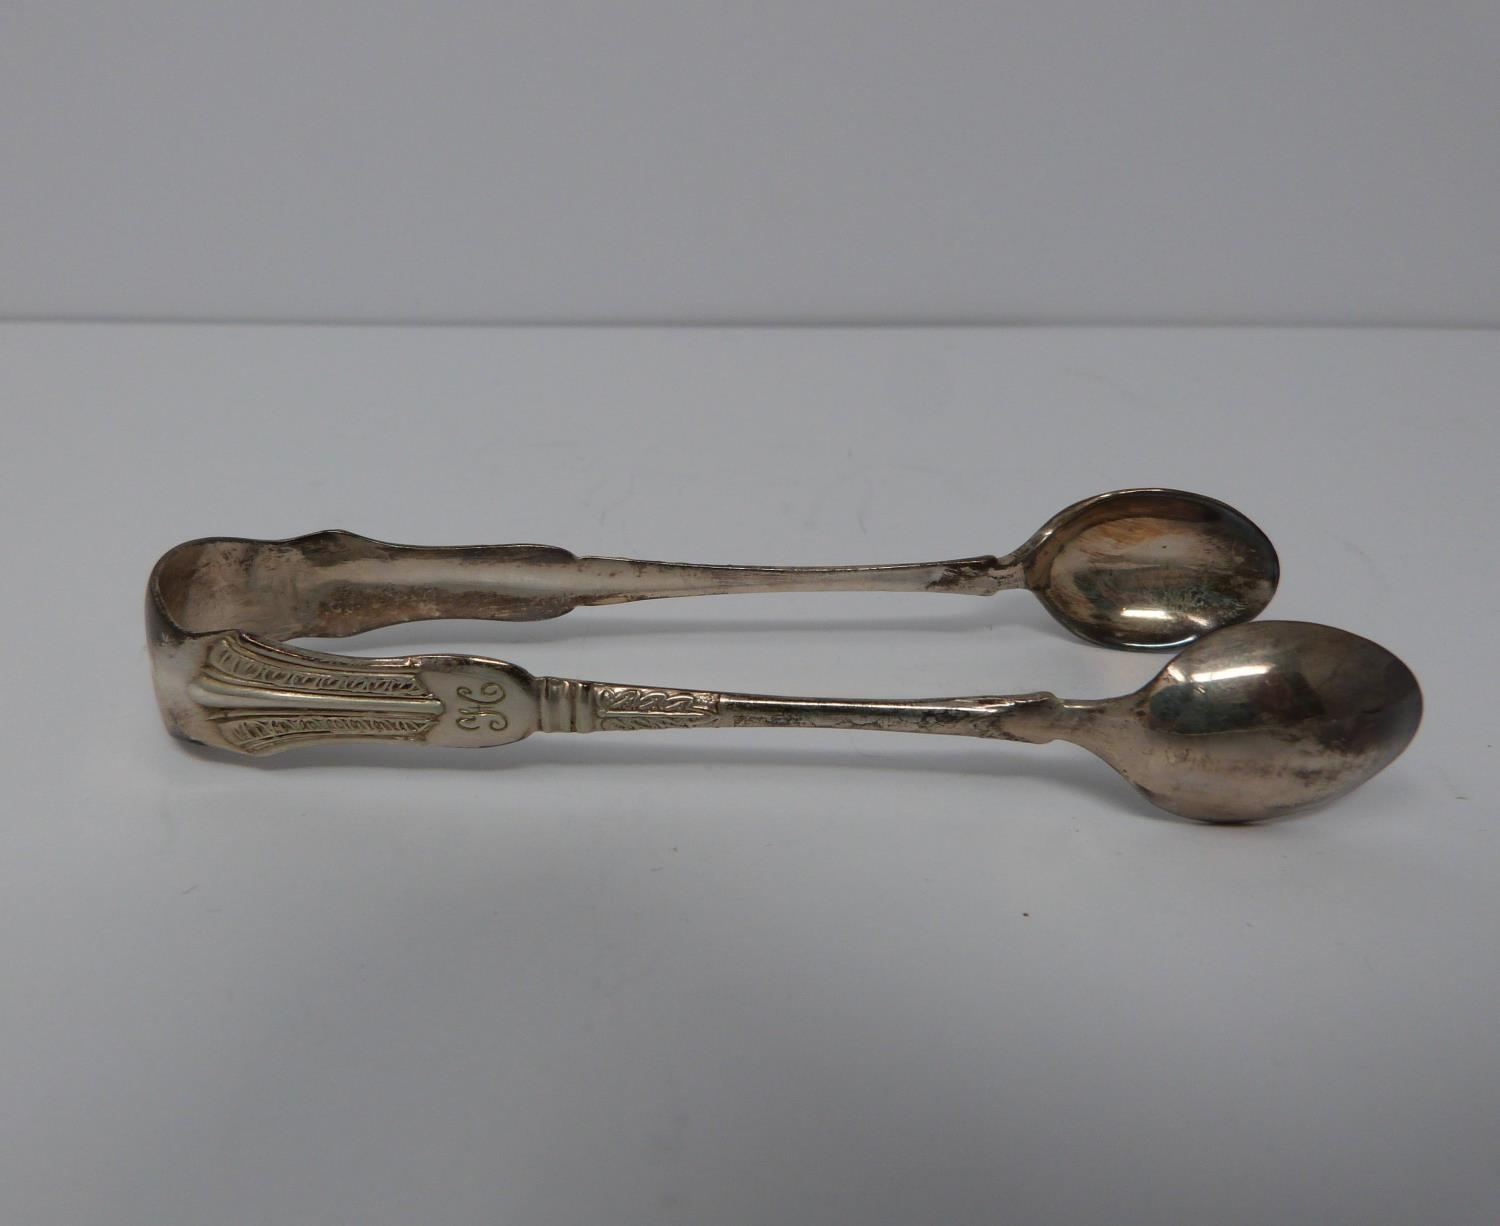 12 cased silver spoons and matching tongs, William Devenport, Birmingham, 1921, feather and leaf - Image 3 of 8